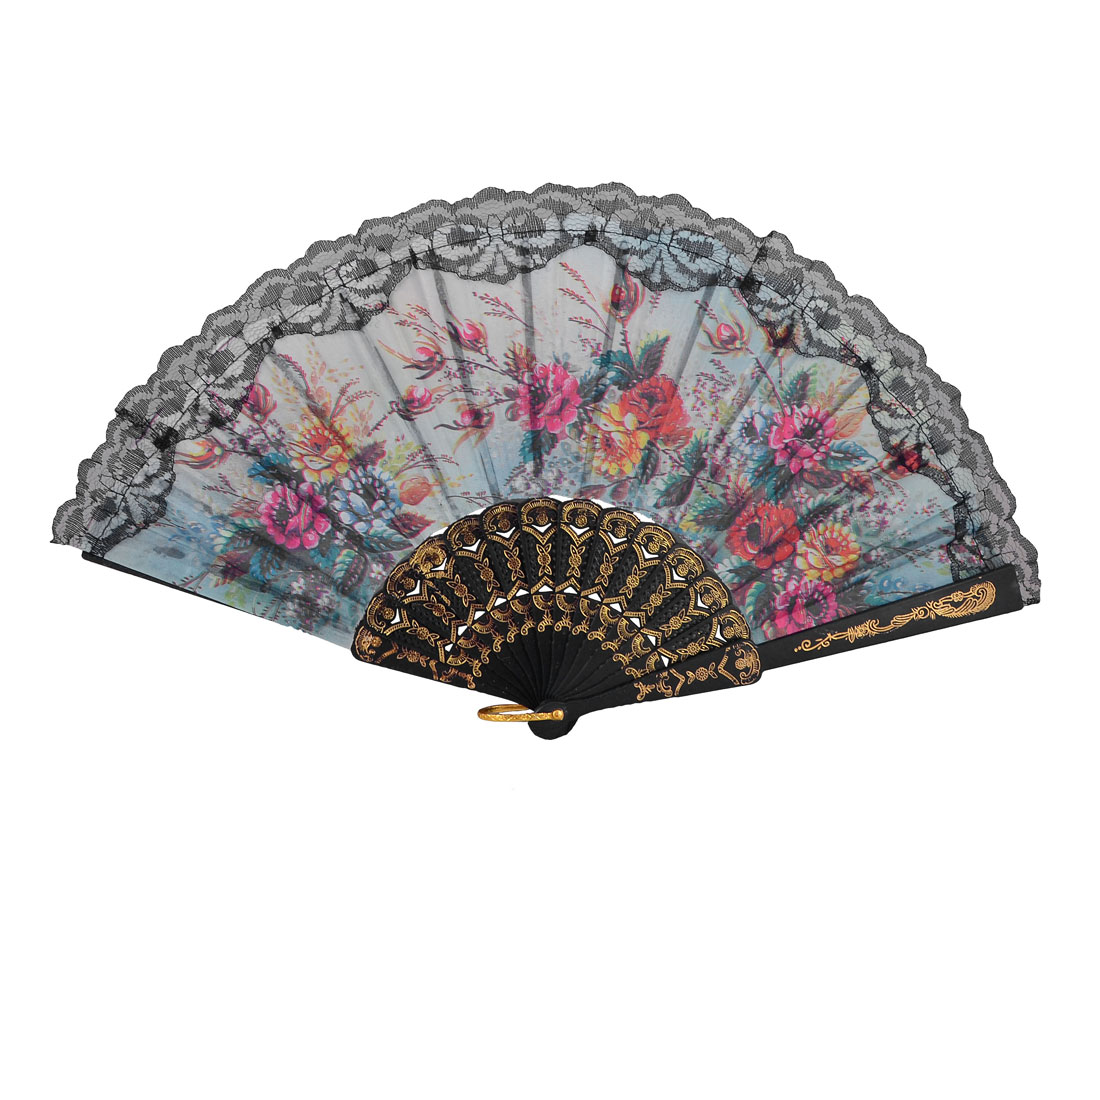 Black Lace Trim Colorful Flowers Pattern Plastic Embossed Ribs Folding Hand Fan